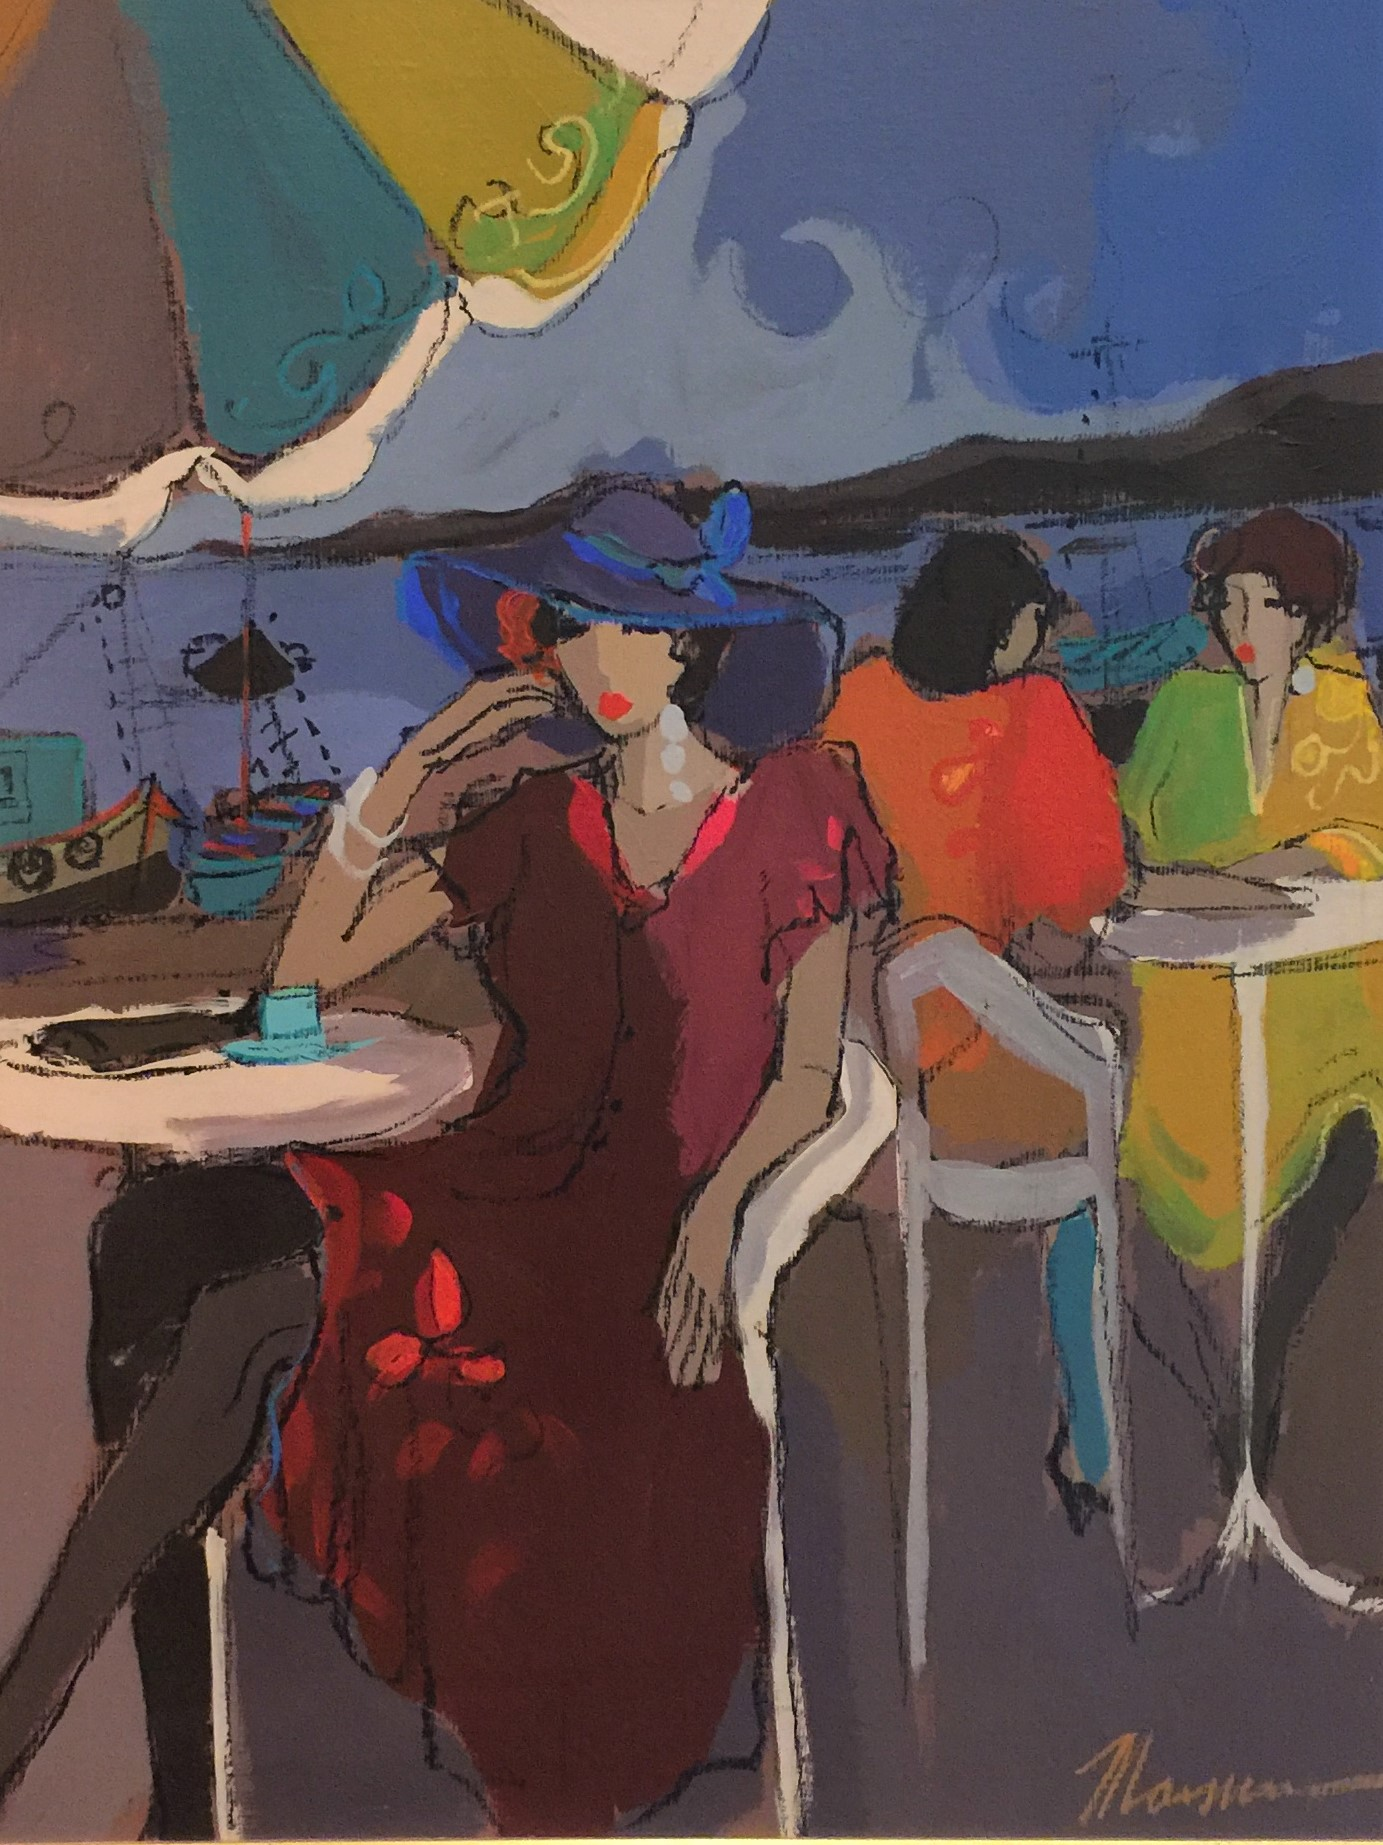 Portofino Evening artwork by Isaac Maimon - art listed for sale on Artplode